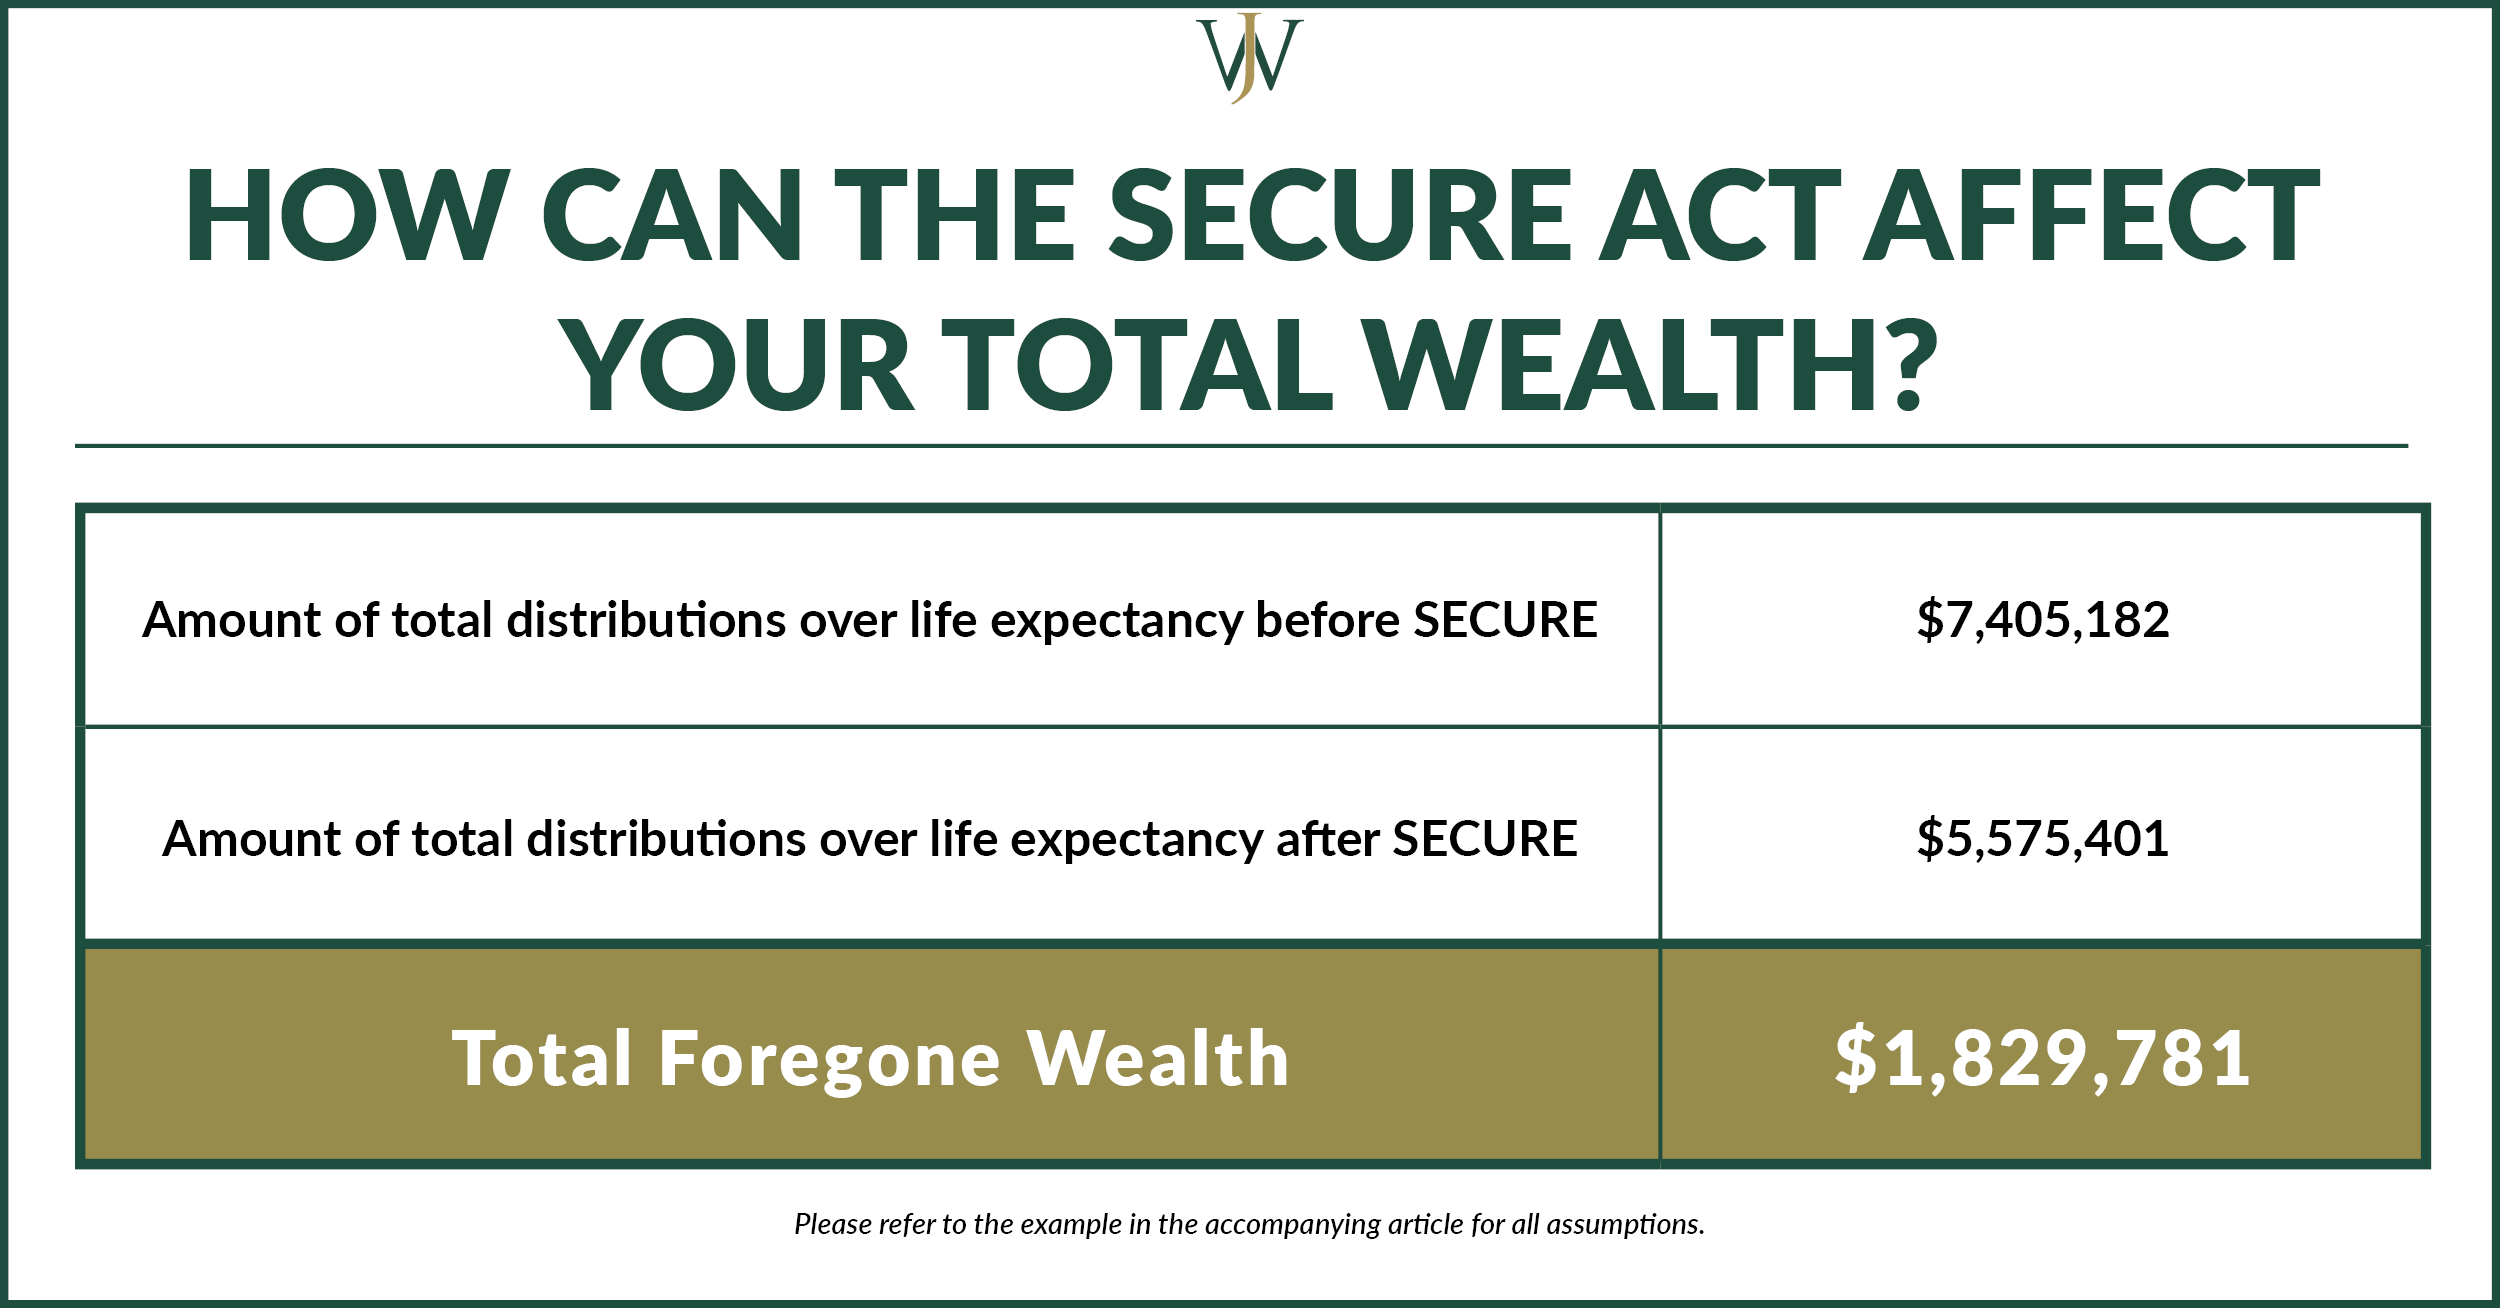 how can SECURE affect total wealth